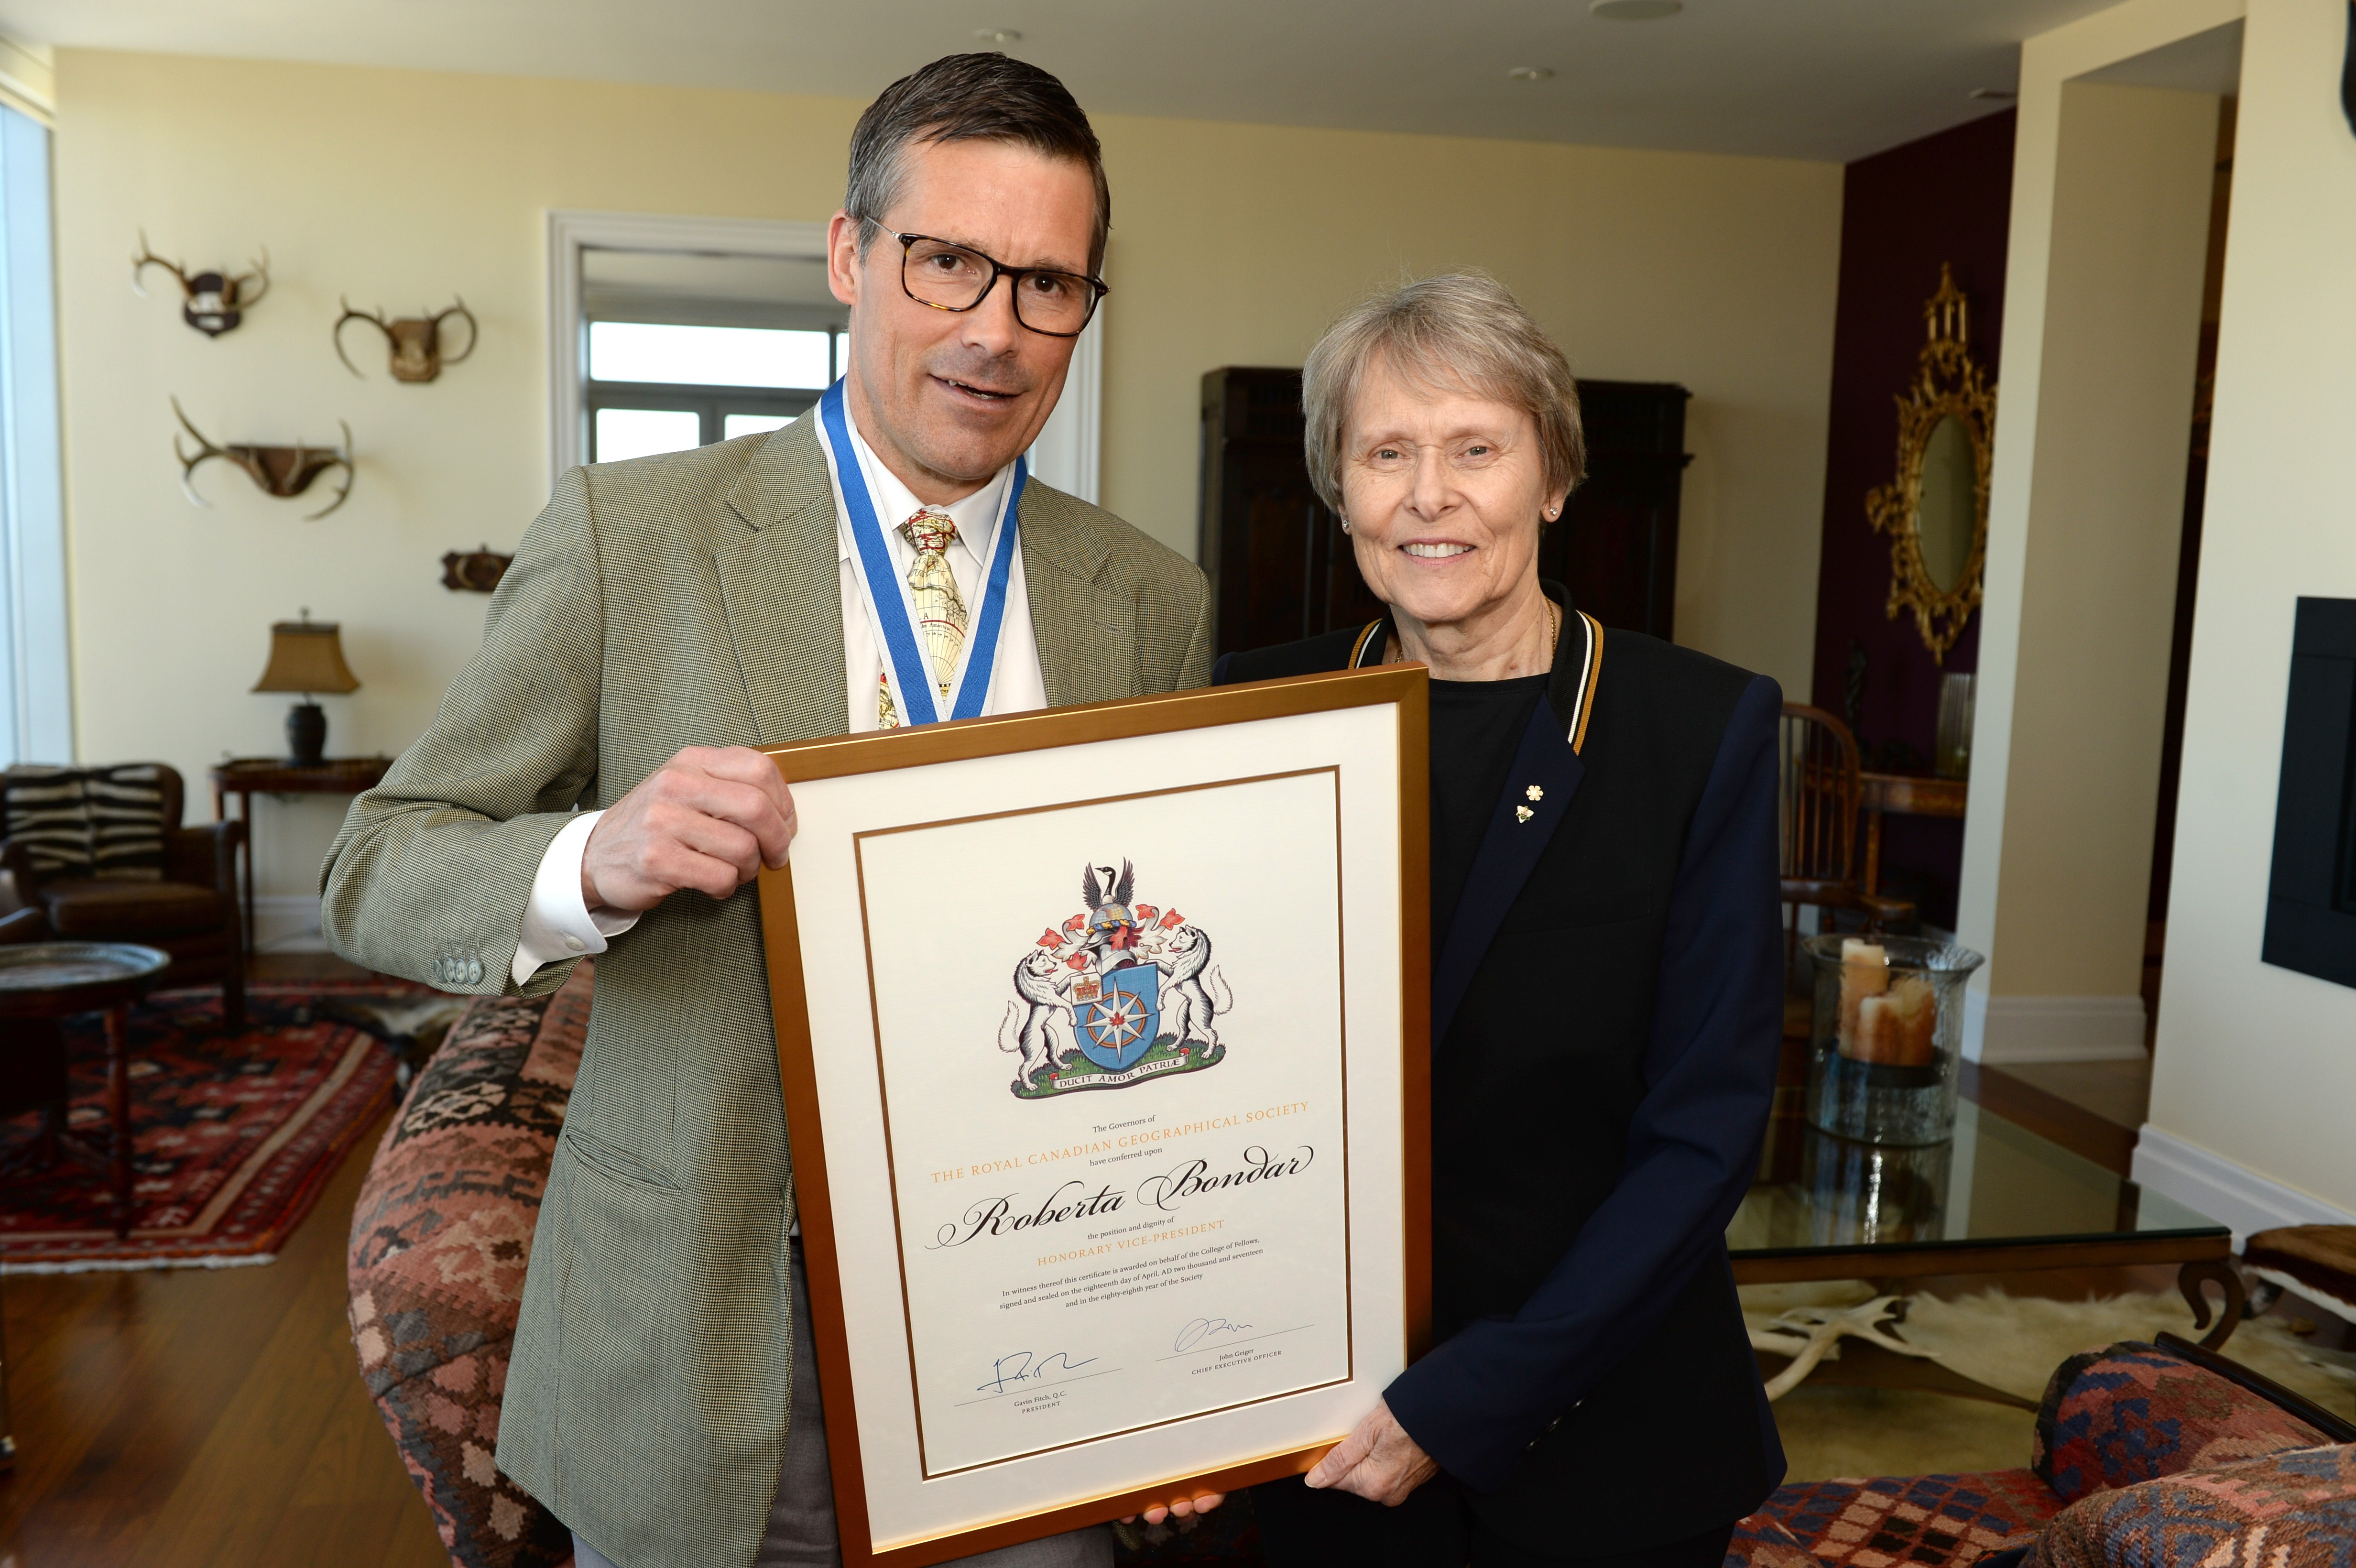 Roberta Bondar On Her New Role As Honorary Vice President